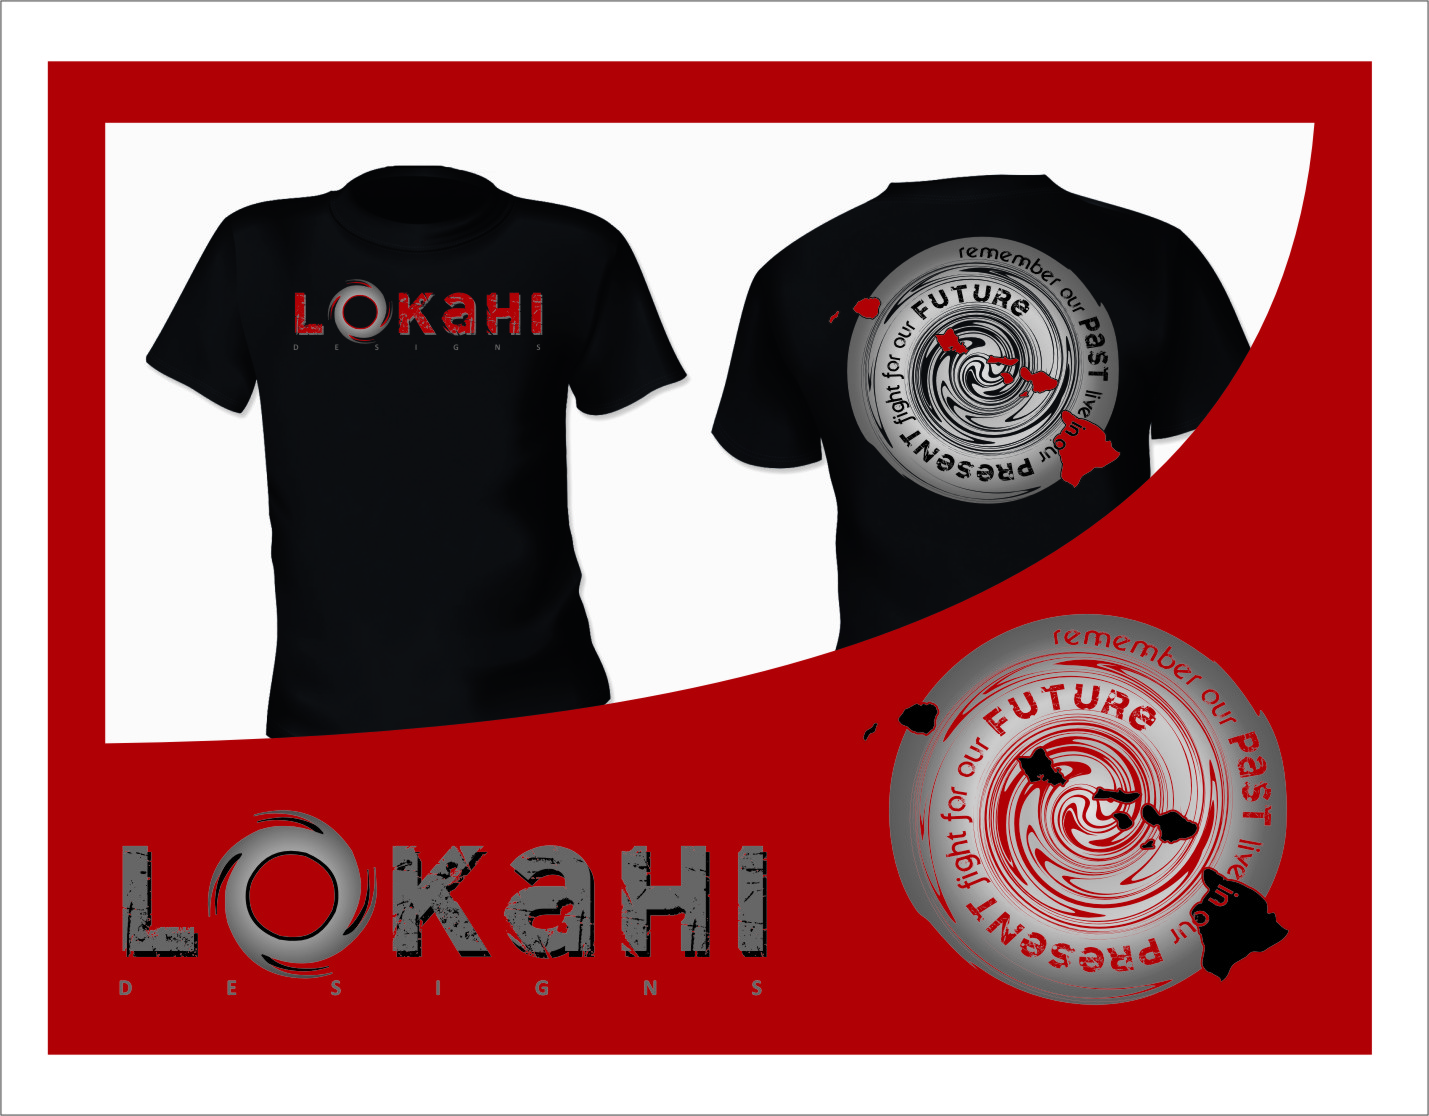 Clothing Design by Ngepet_art - Entry No. 72 in the Clothing Design Contest Creative Clothing Design for LOKAHI designs.